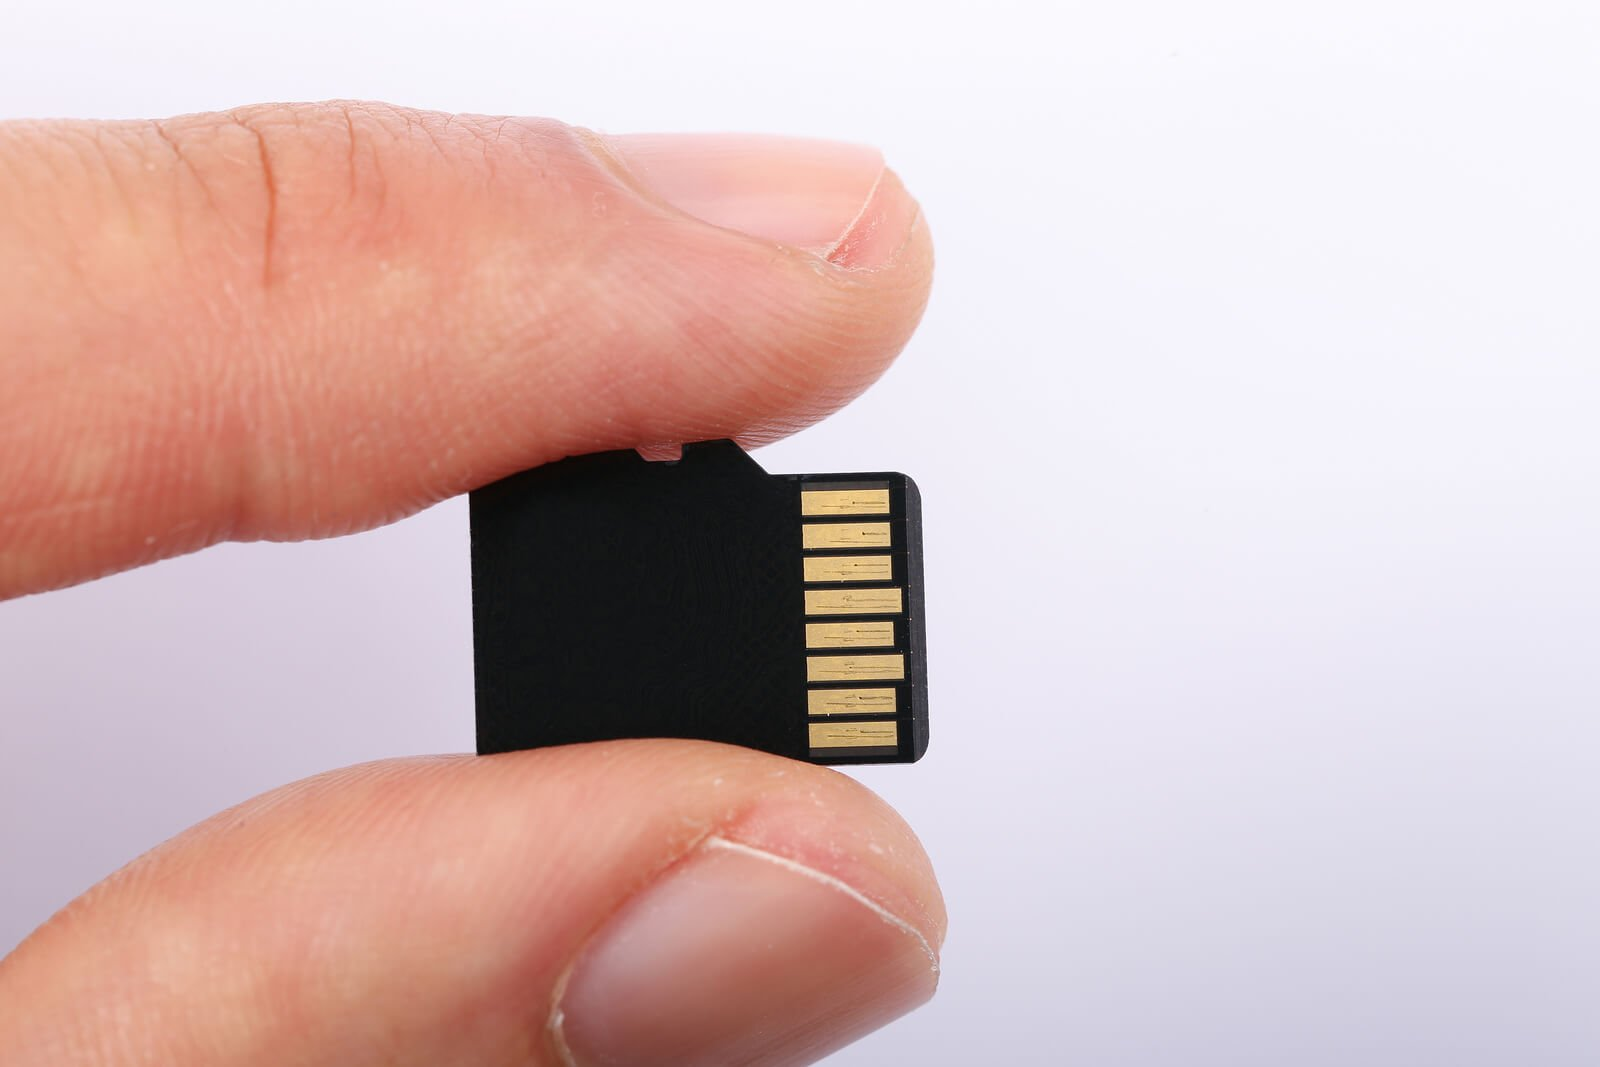 Micro Sd Memory Card With Finger